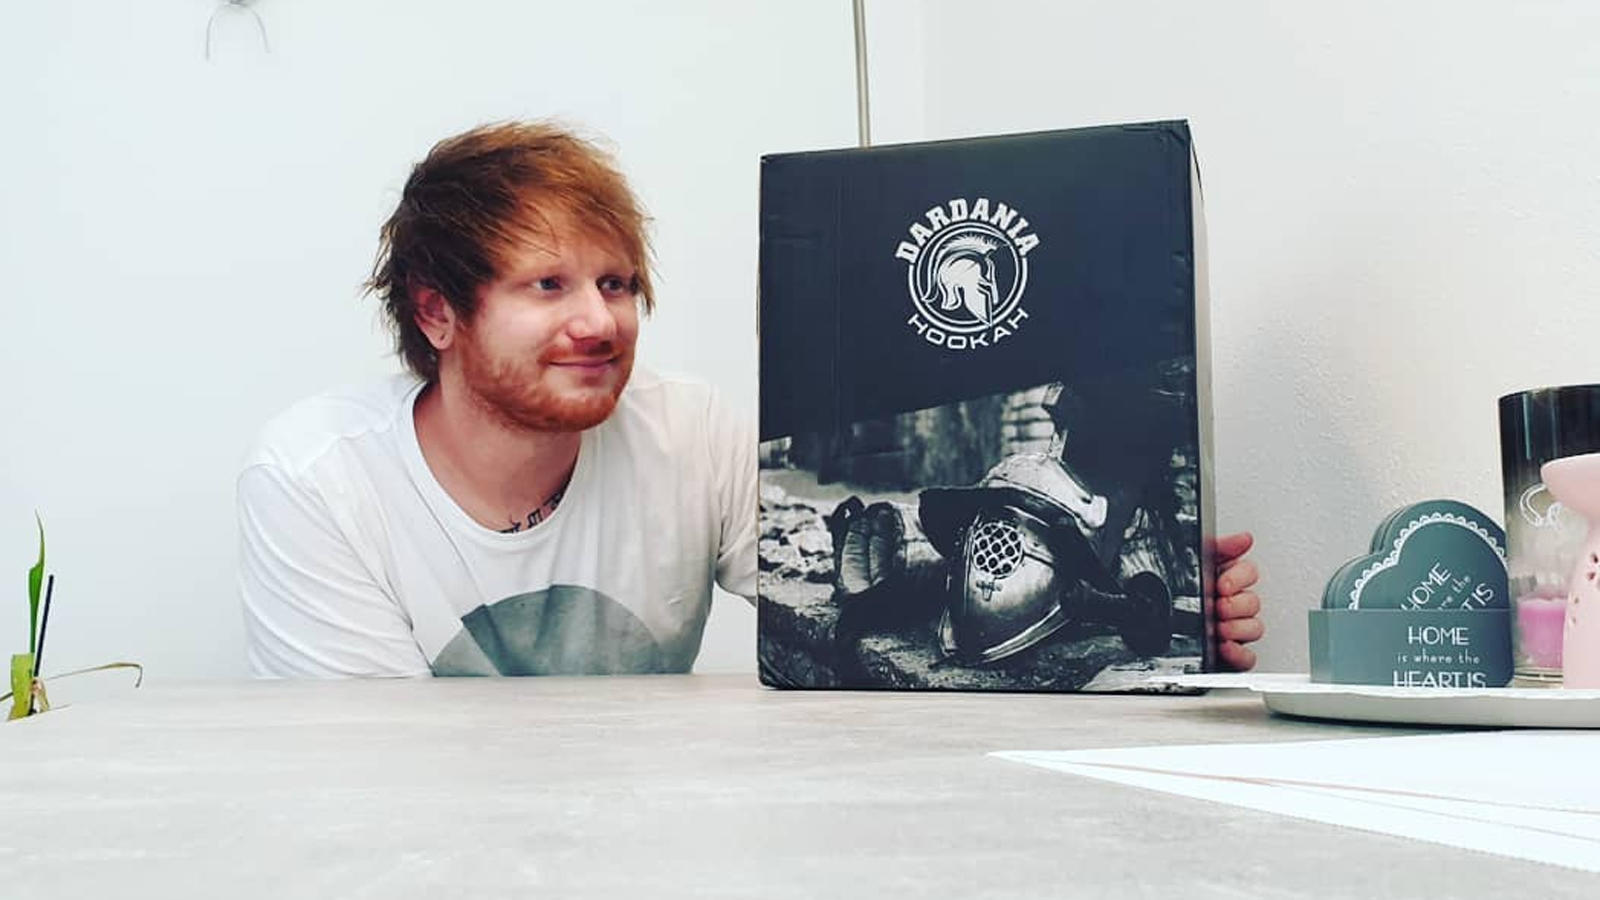 Ed Sheeran's 'Beautiful People' will be out soon